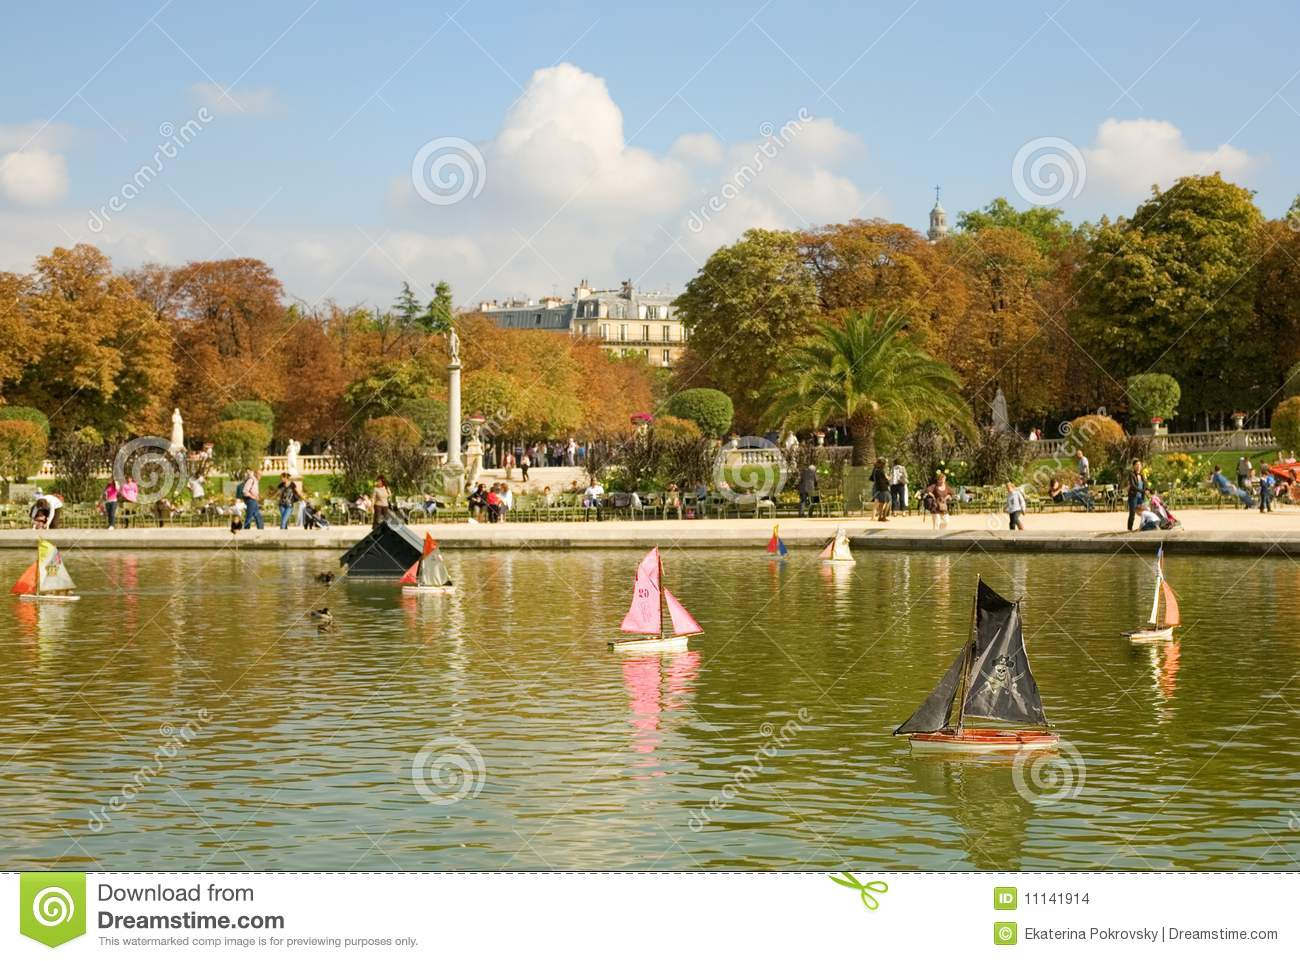 Toy boats in the Luxembourg Garden